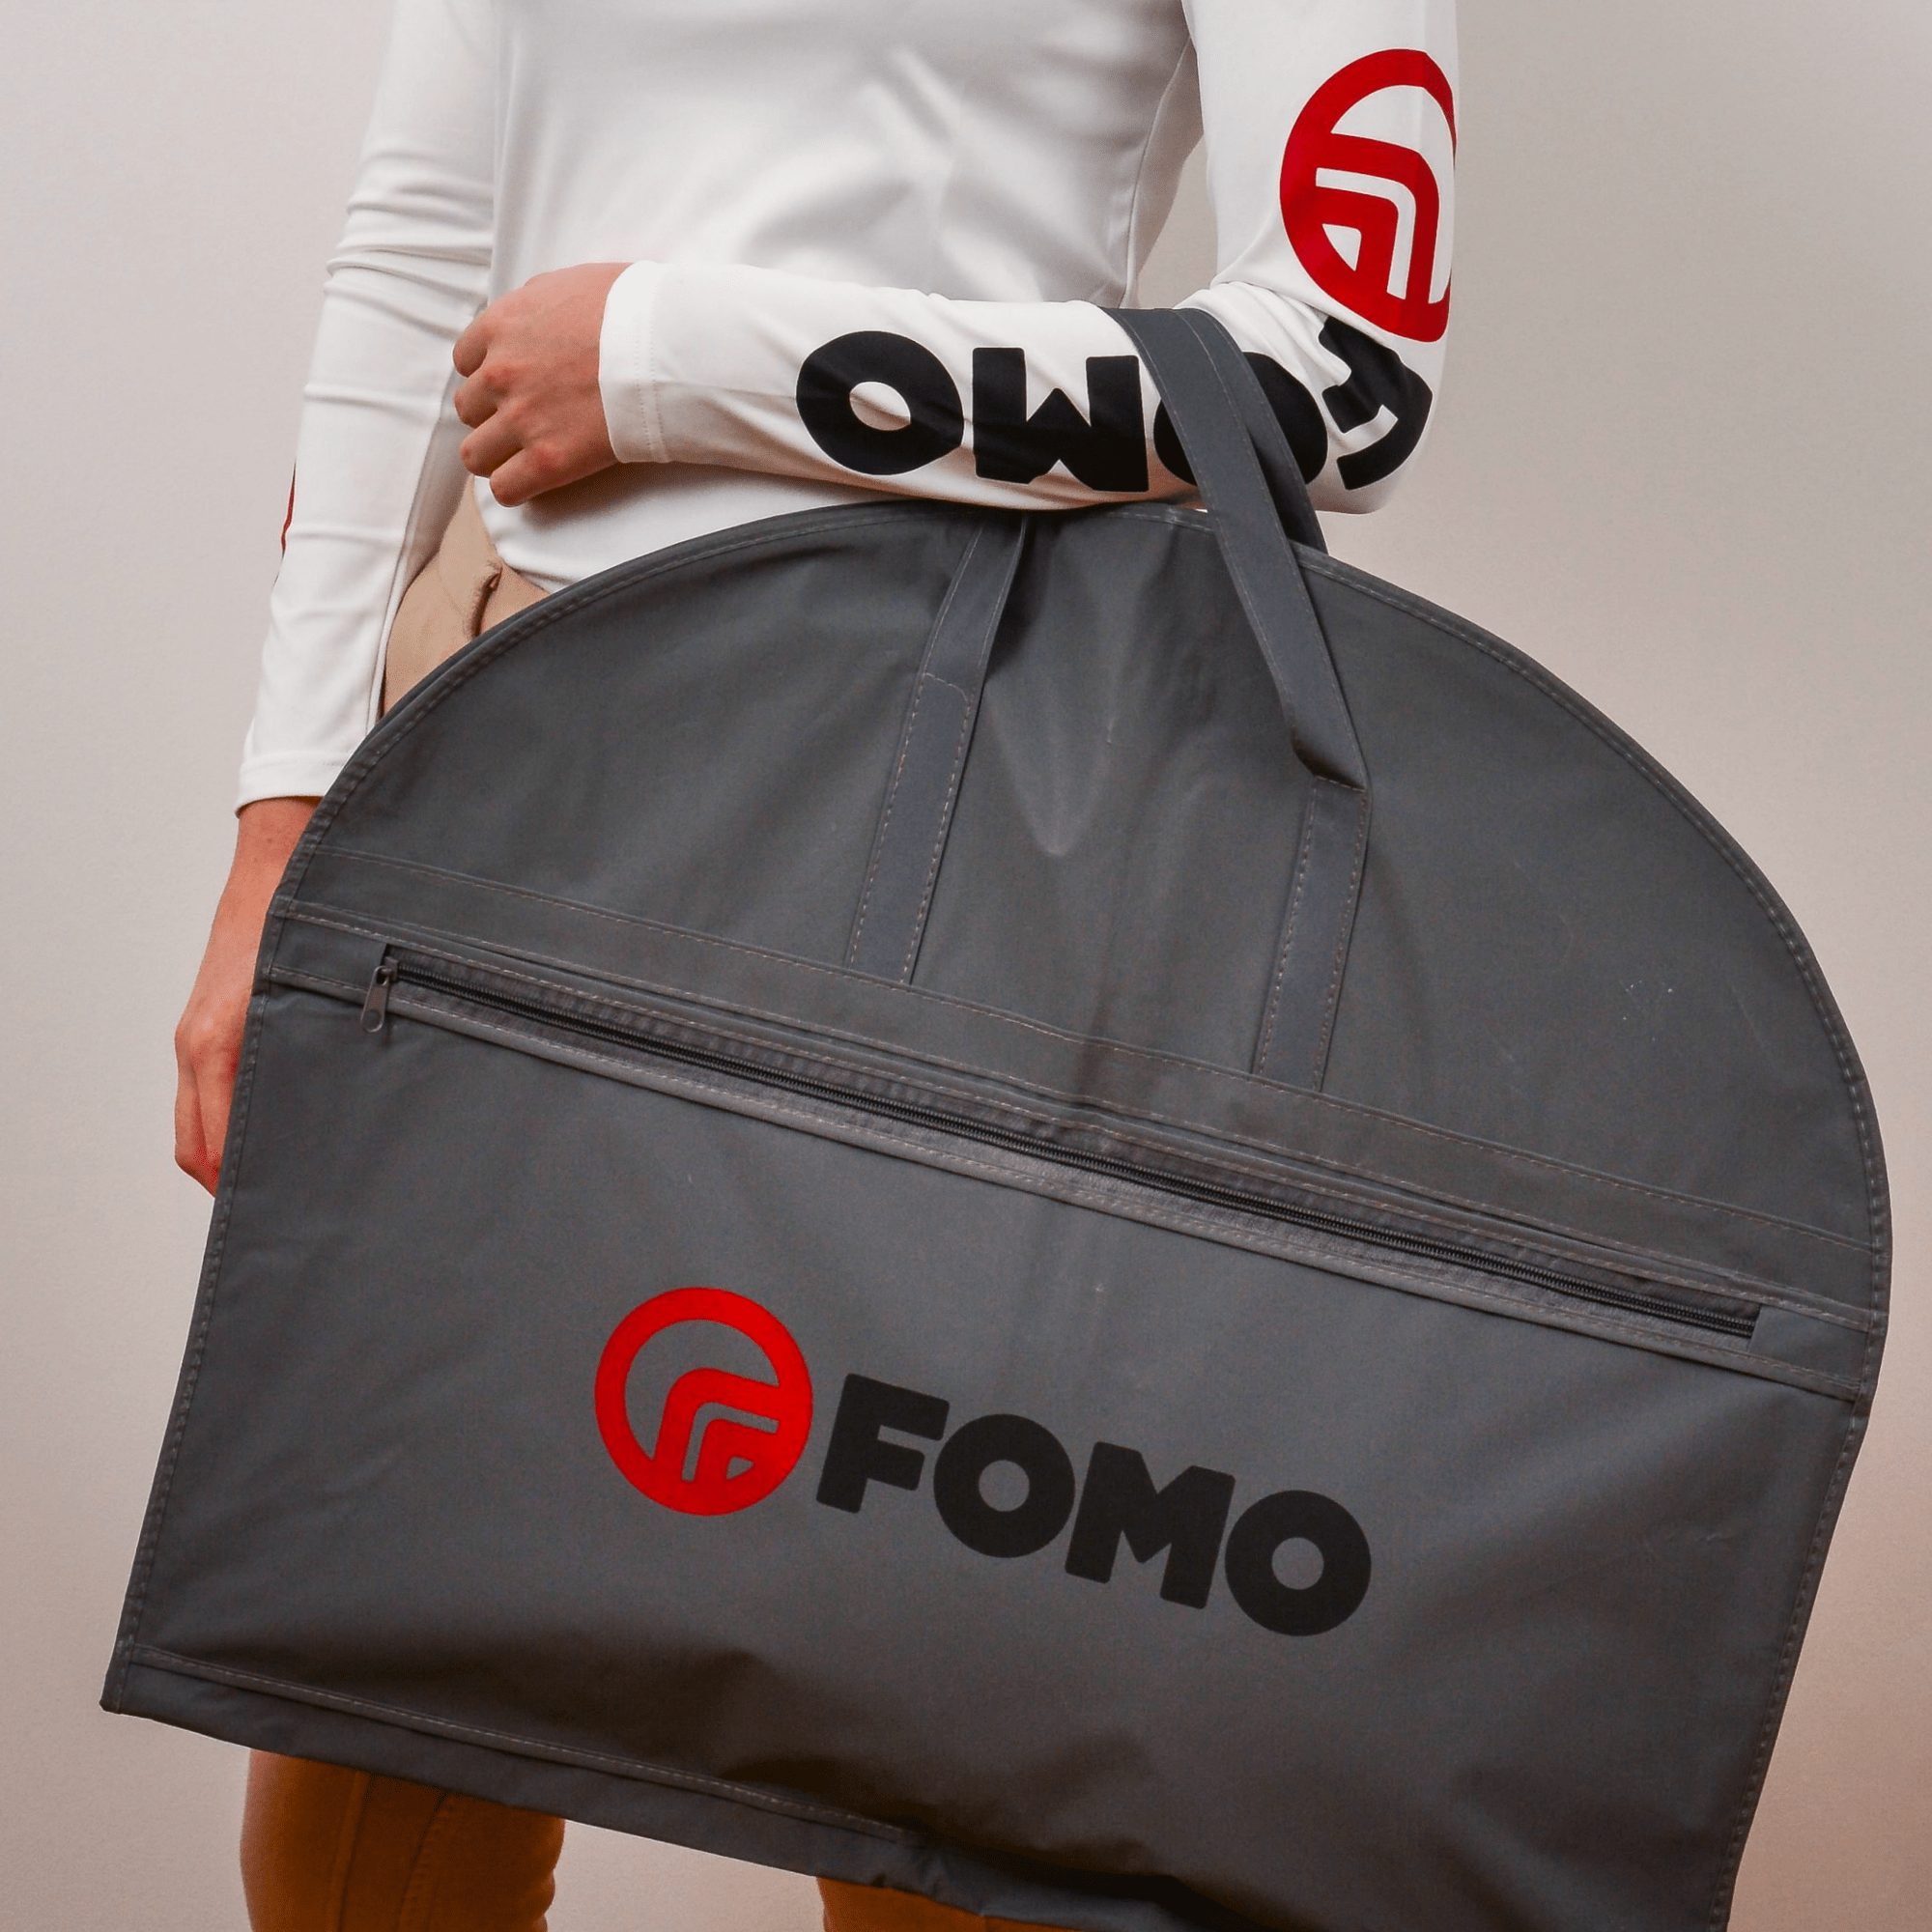 https://www.fomoprotection.com/wp-content/uploads/2019/11/Garment-Bag-Final-min.png